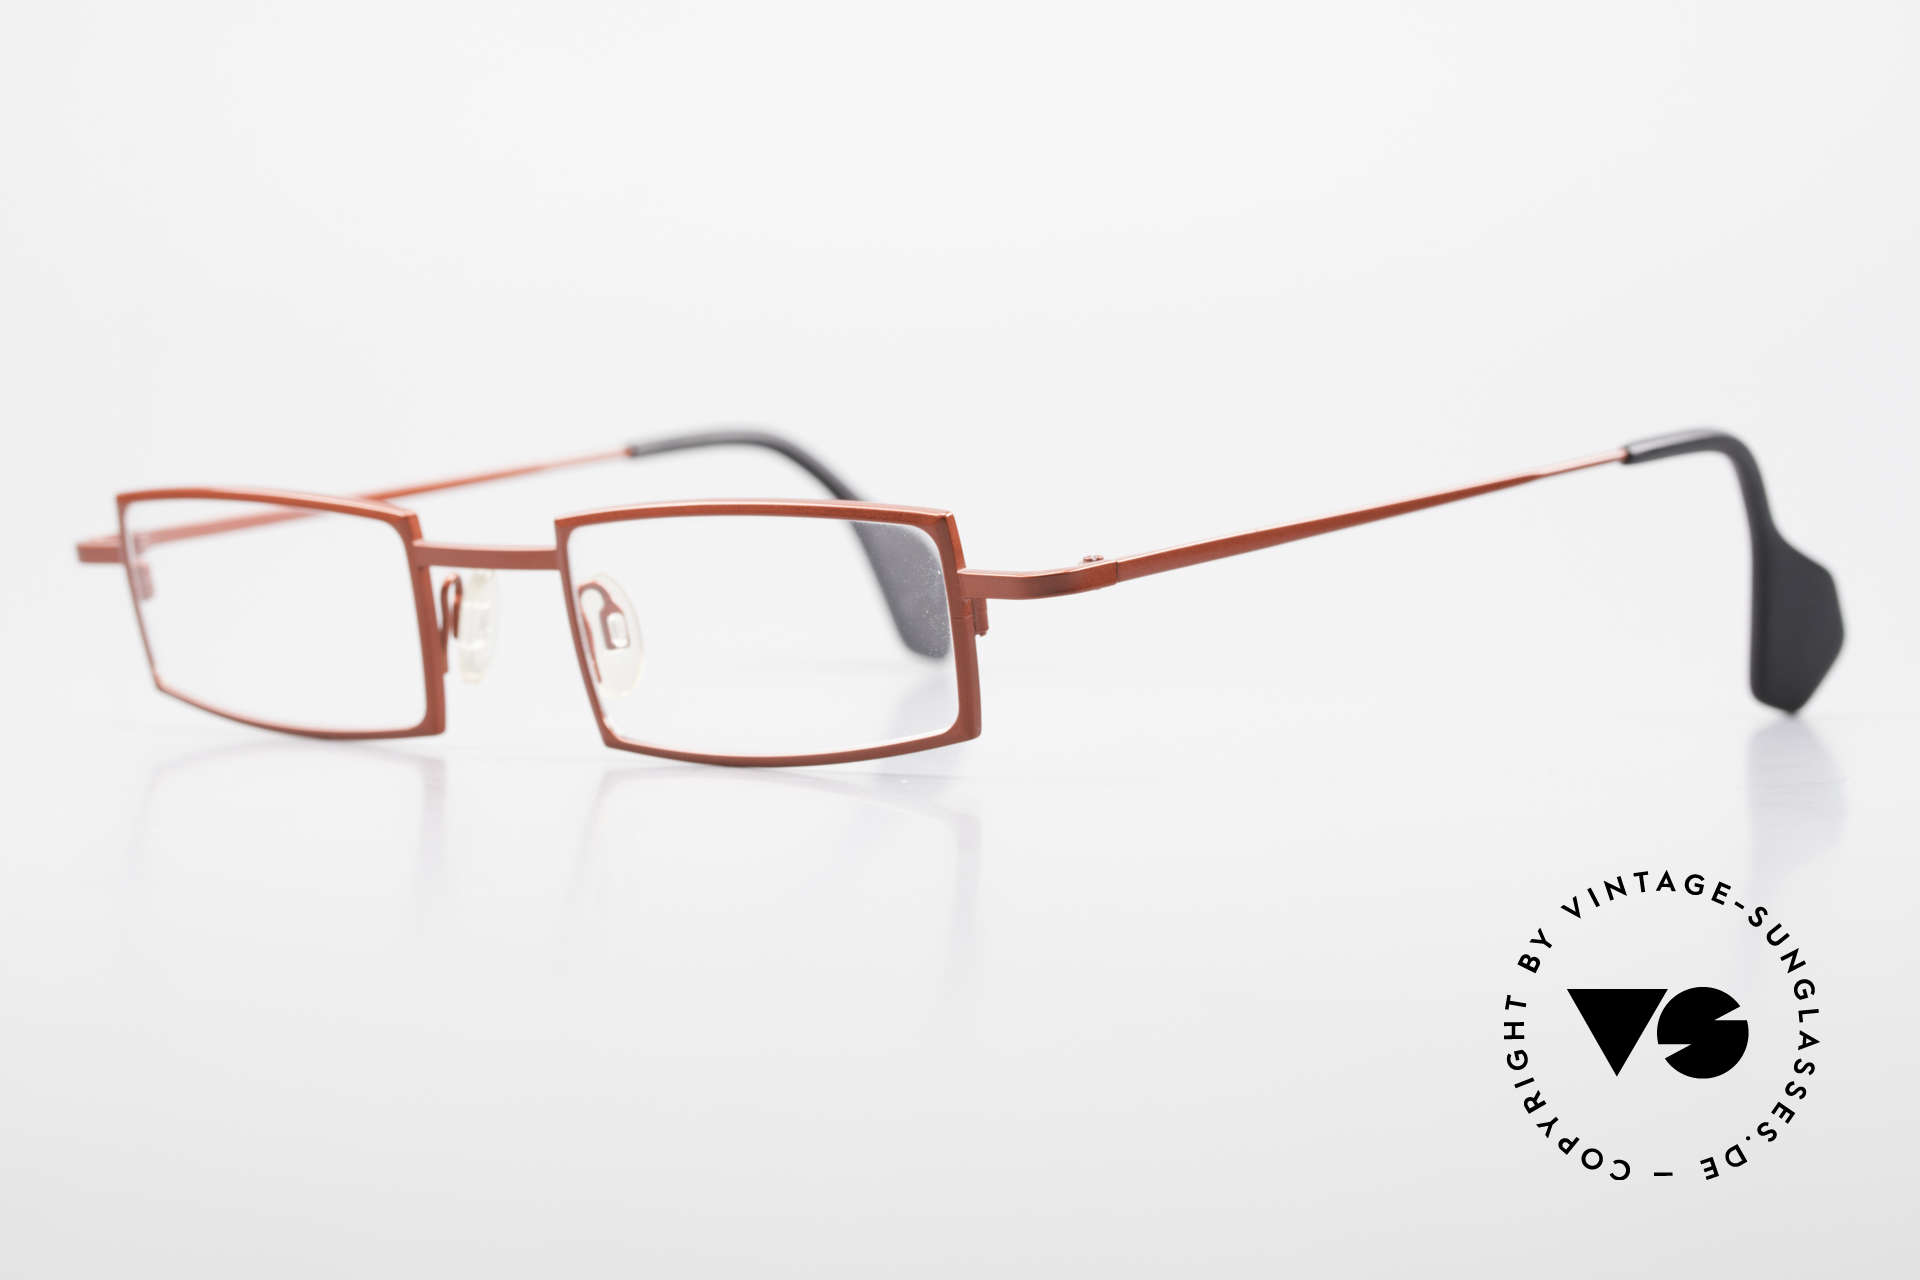 """Theo Belgium Largest Square Striking Metal Glasses, model name """"Largest"""": rather a ladies model in L size, Made for Women"""